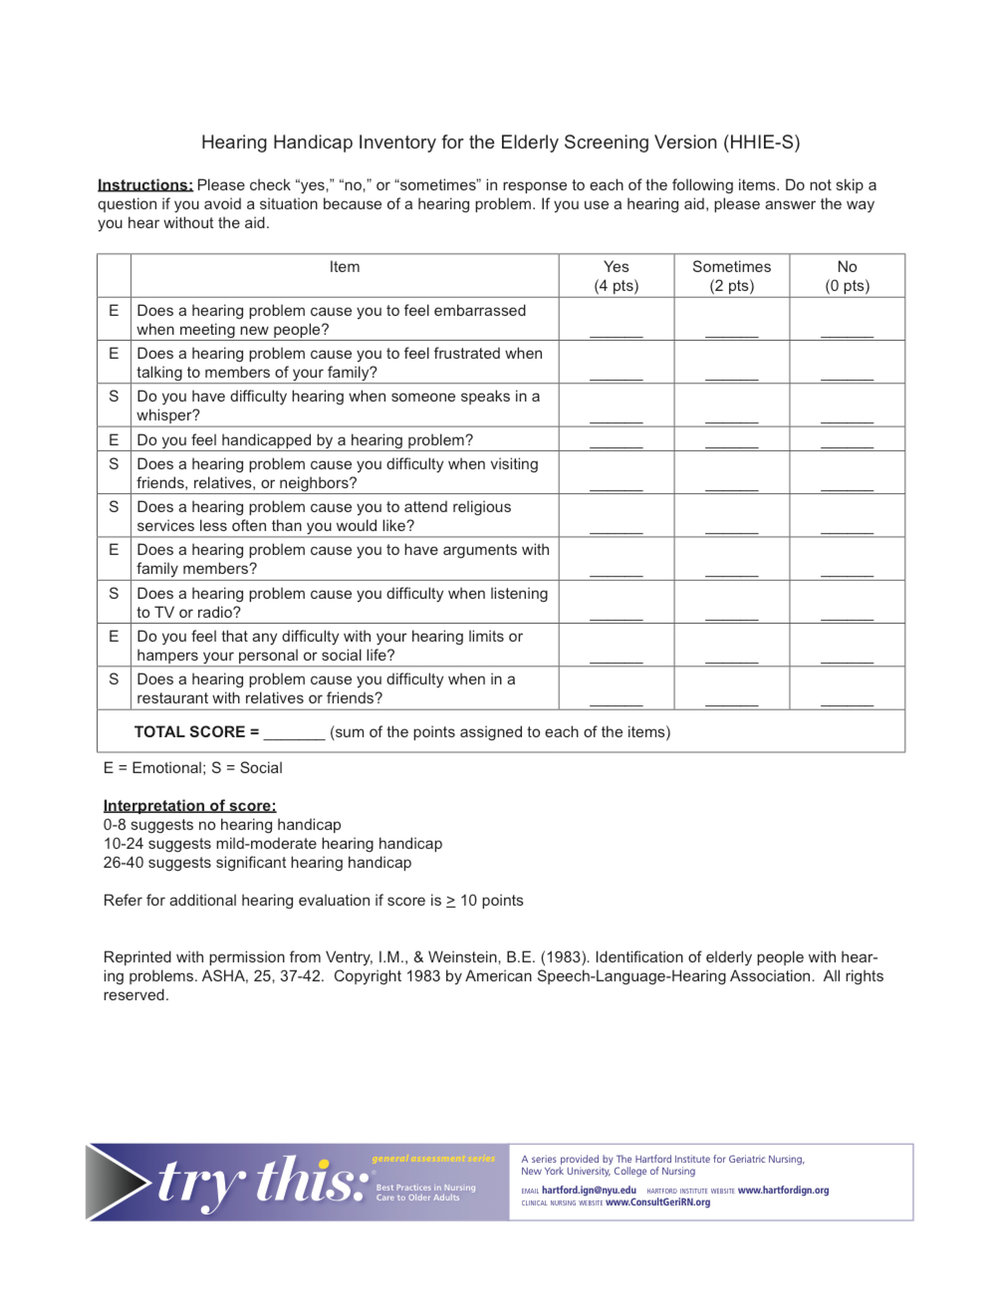 Aging Initiative_Assessment Outline_Sept2015_Page_08.jpg